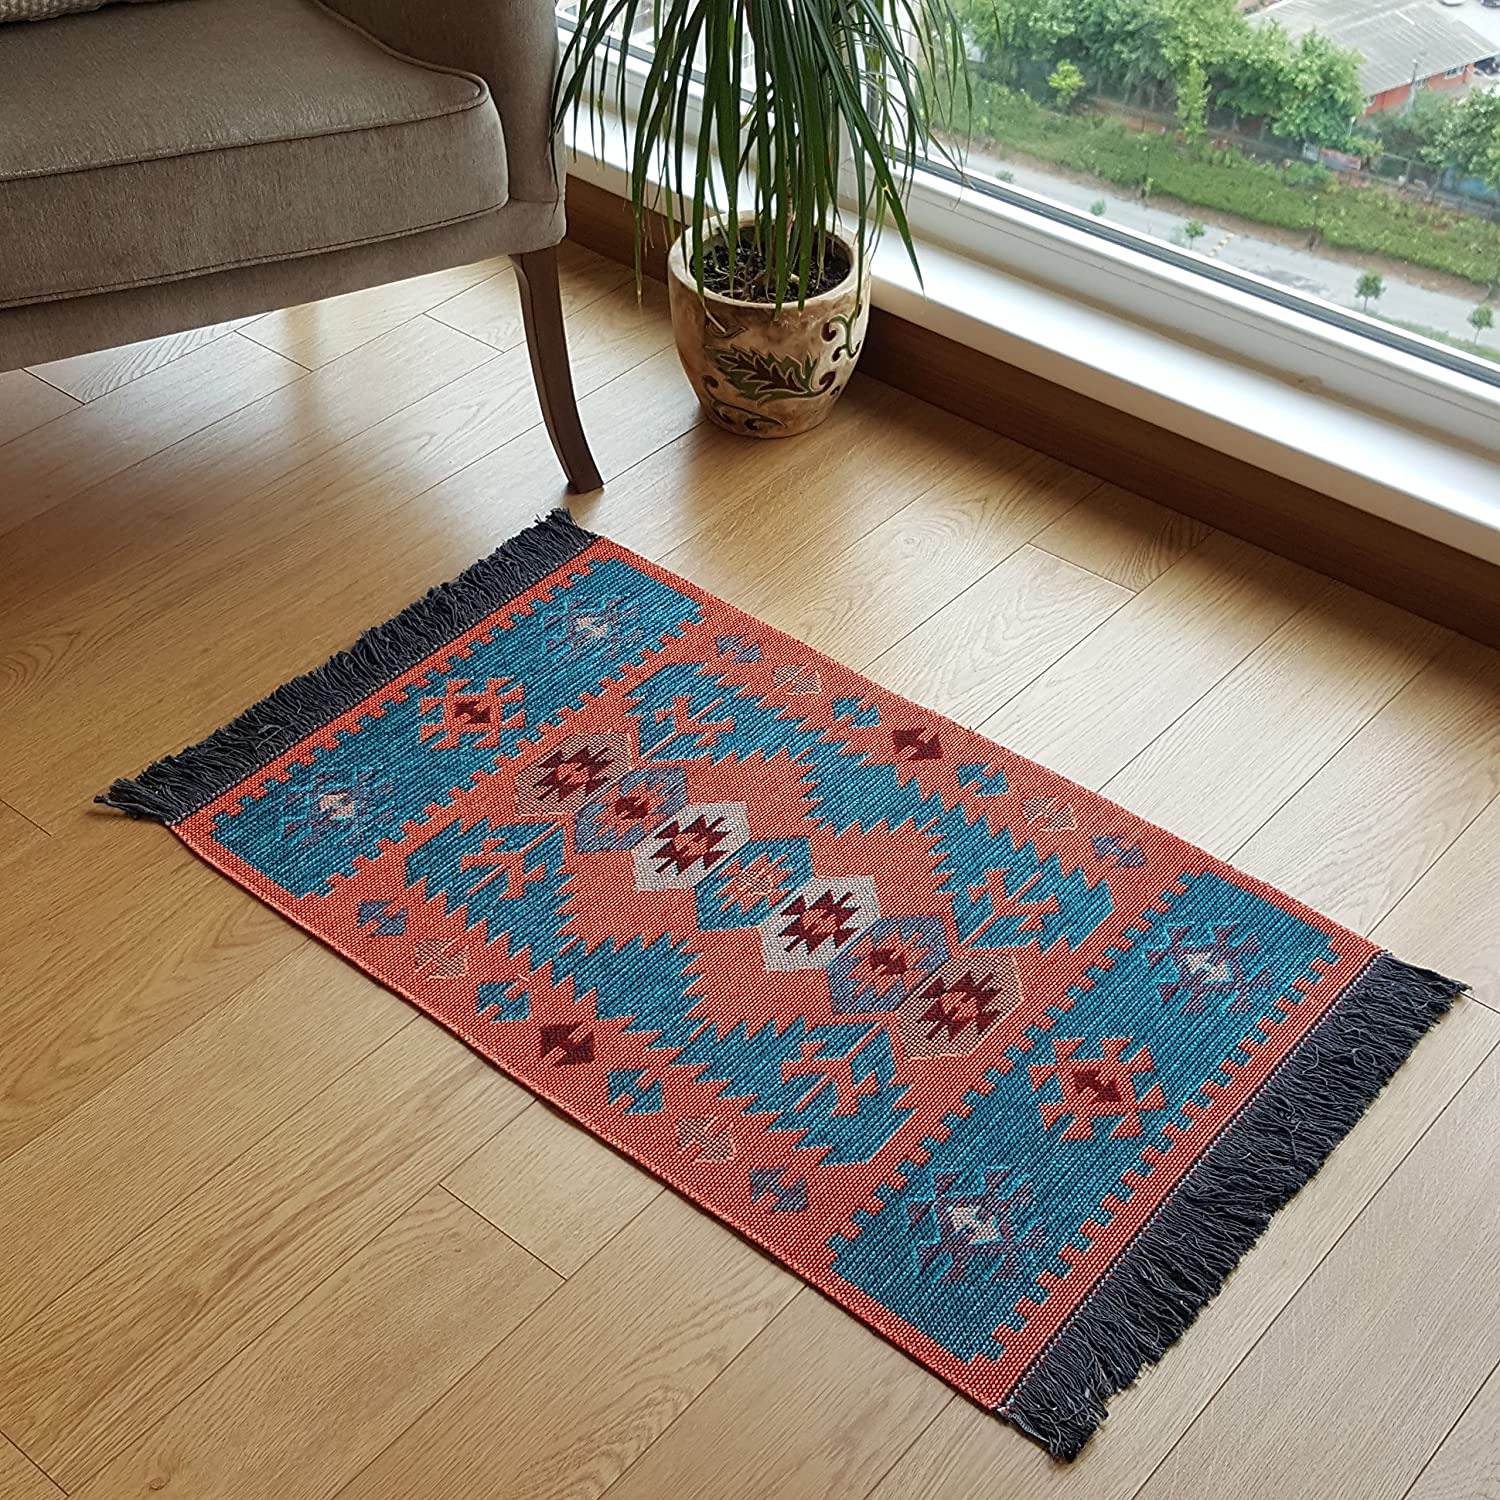 Modern Bohemian Style Small Area Rug, 2' x 3' ft, Washable, Natural Dye Colors, Reversible (Turquoise-Orange)